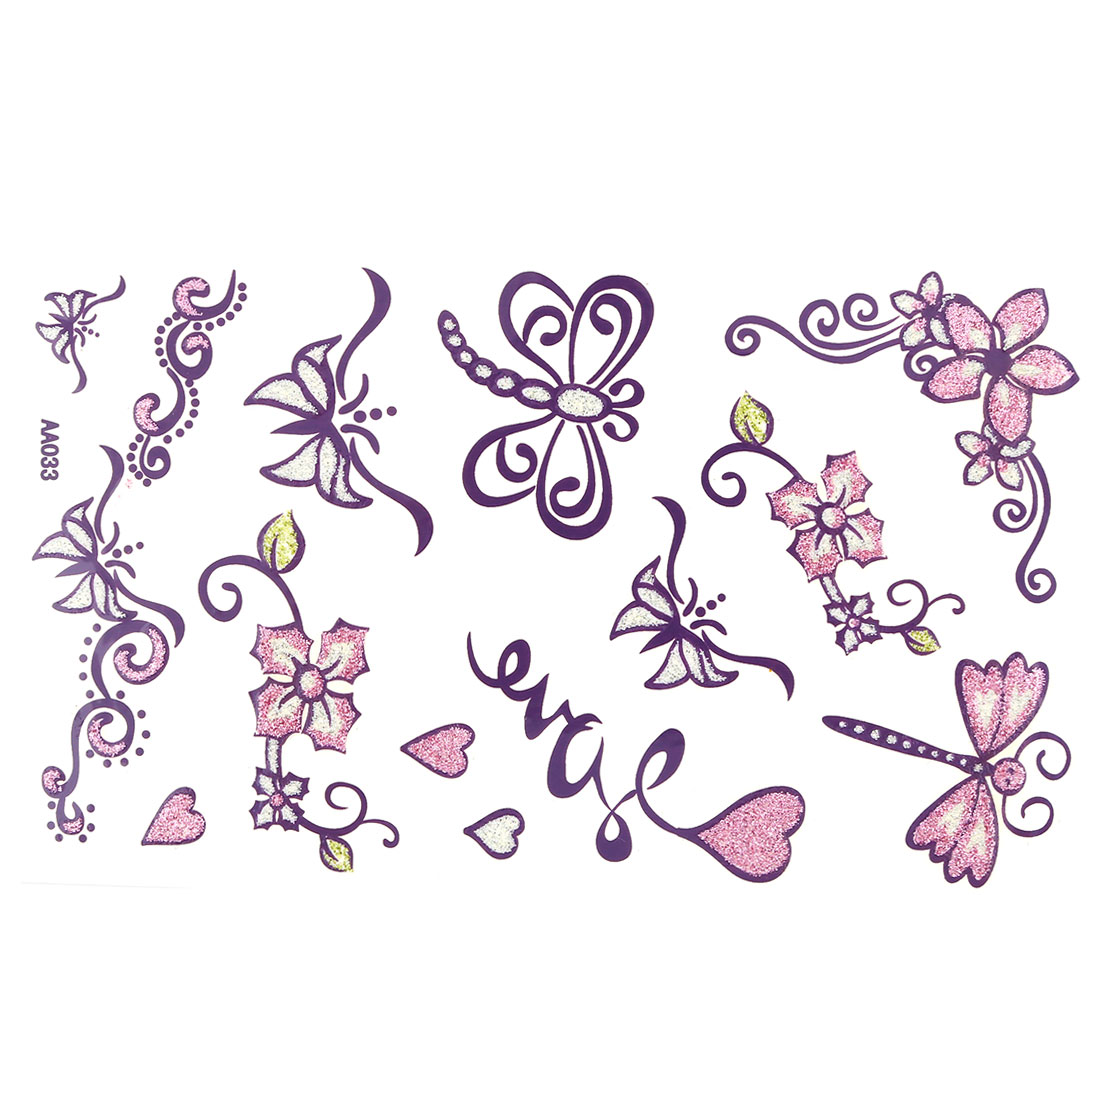 Lady Butterfly Dragonfly Print Removable Body Art Sticker Temporary Tattoo Sheet